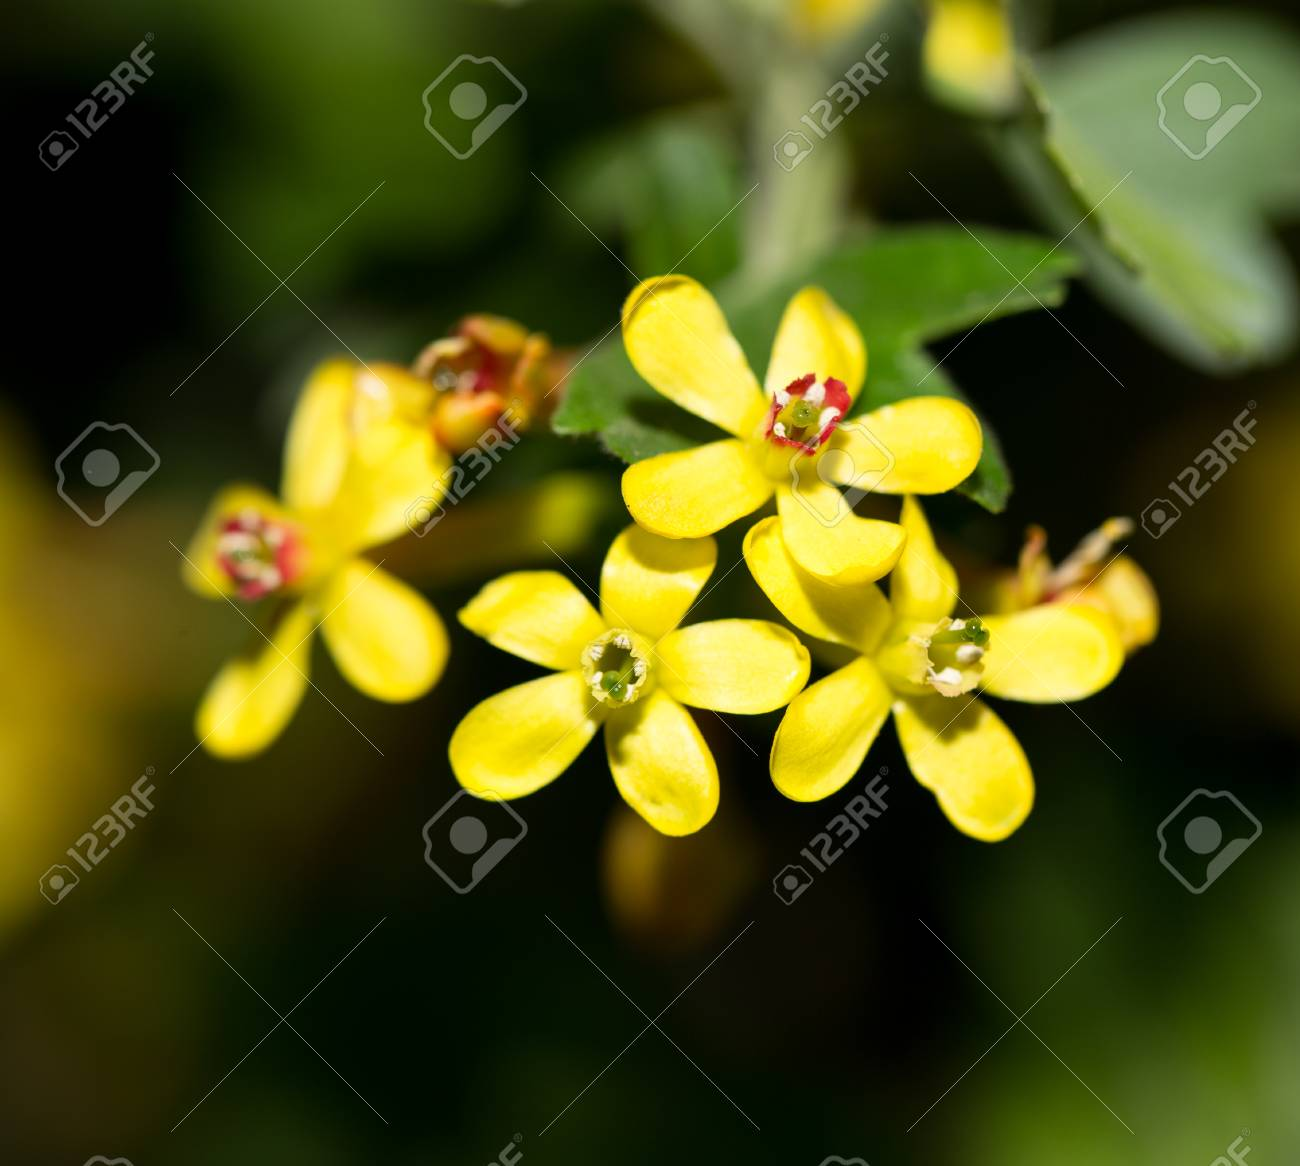 Little yellow flowers topsimages beautiful little yellow flowers in nature macro stock photo jpg 1300x1166 little yellow flowers izmirmasajfo